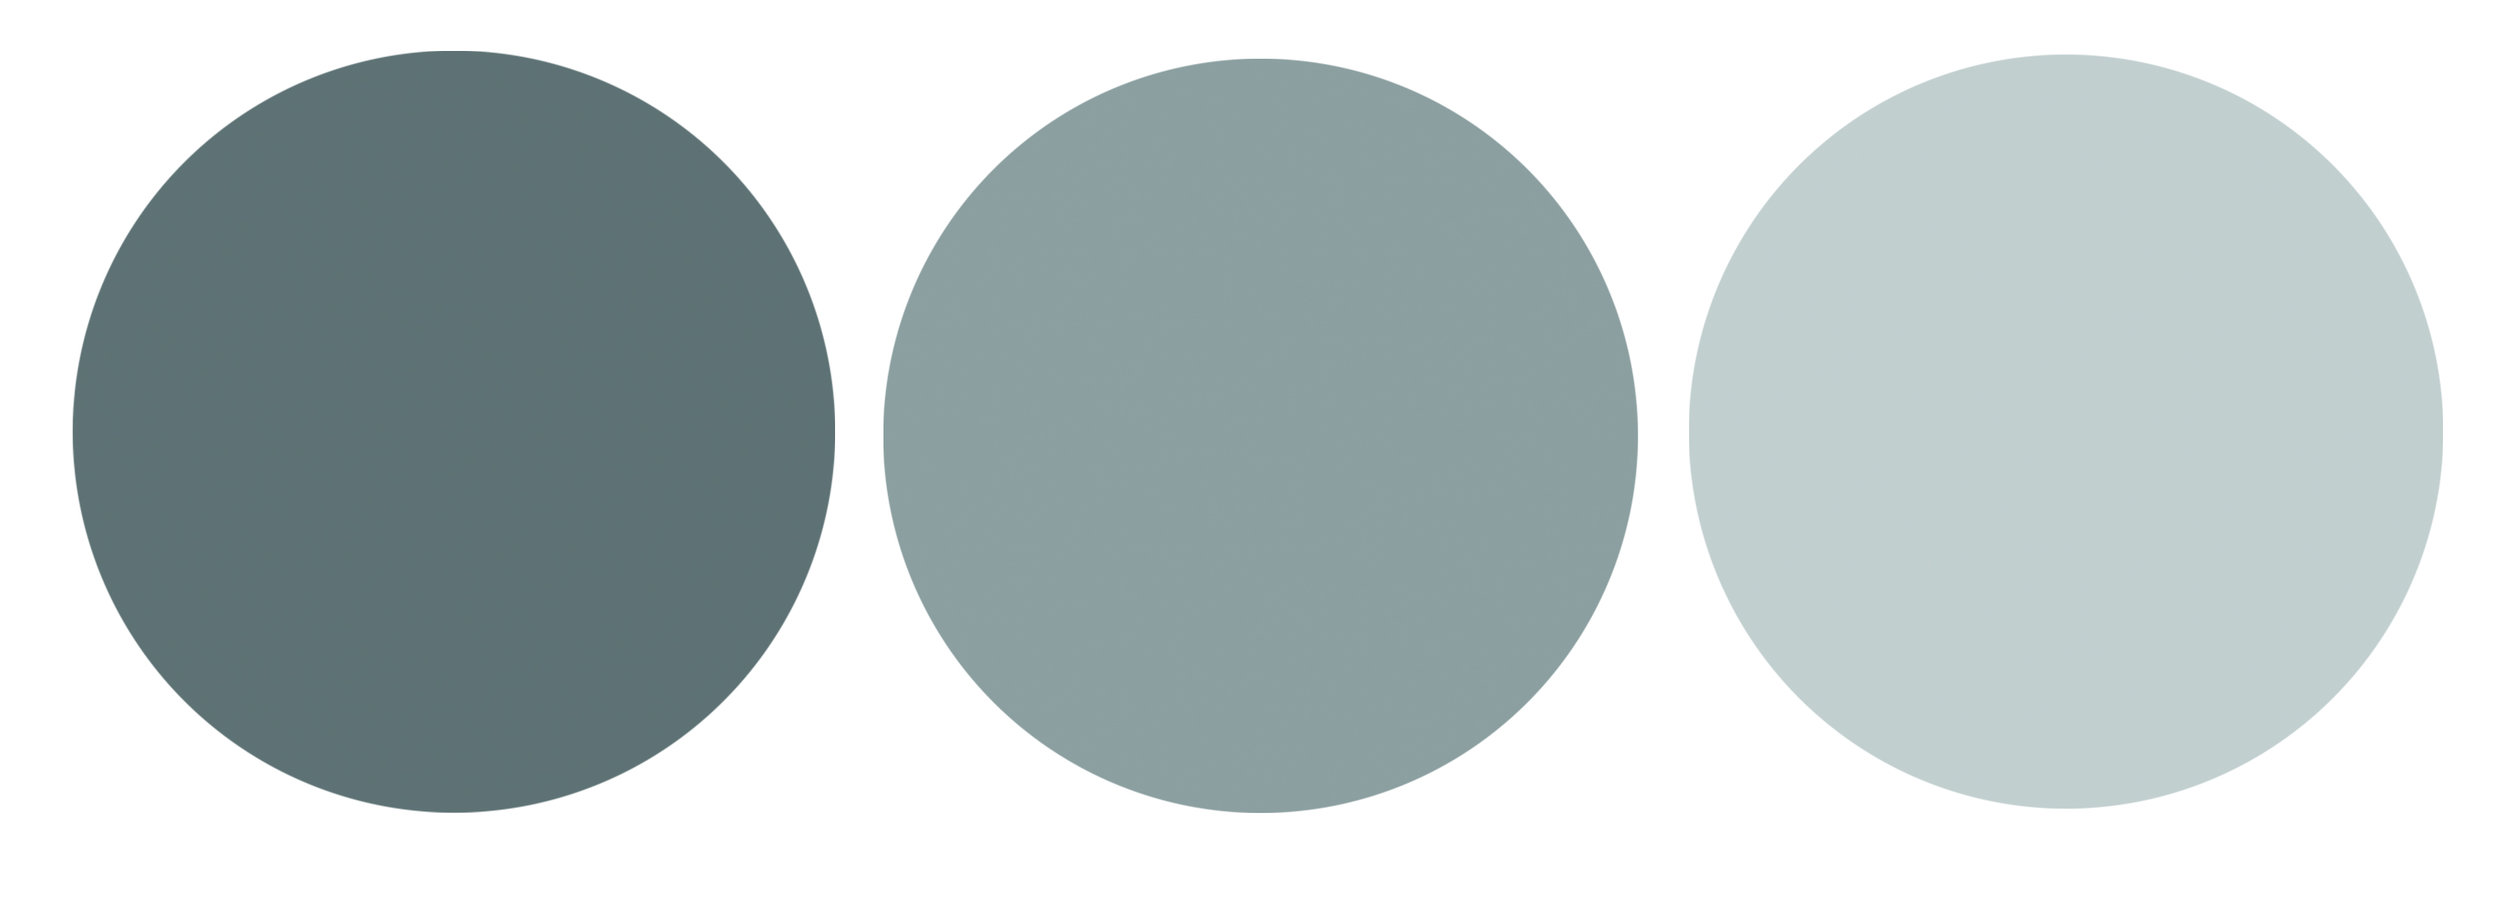 Sherwin Williams paint selections for House Clicked by Jamie House Design